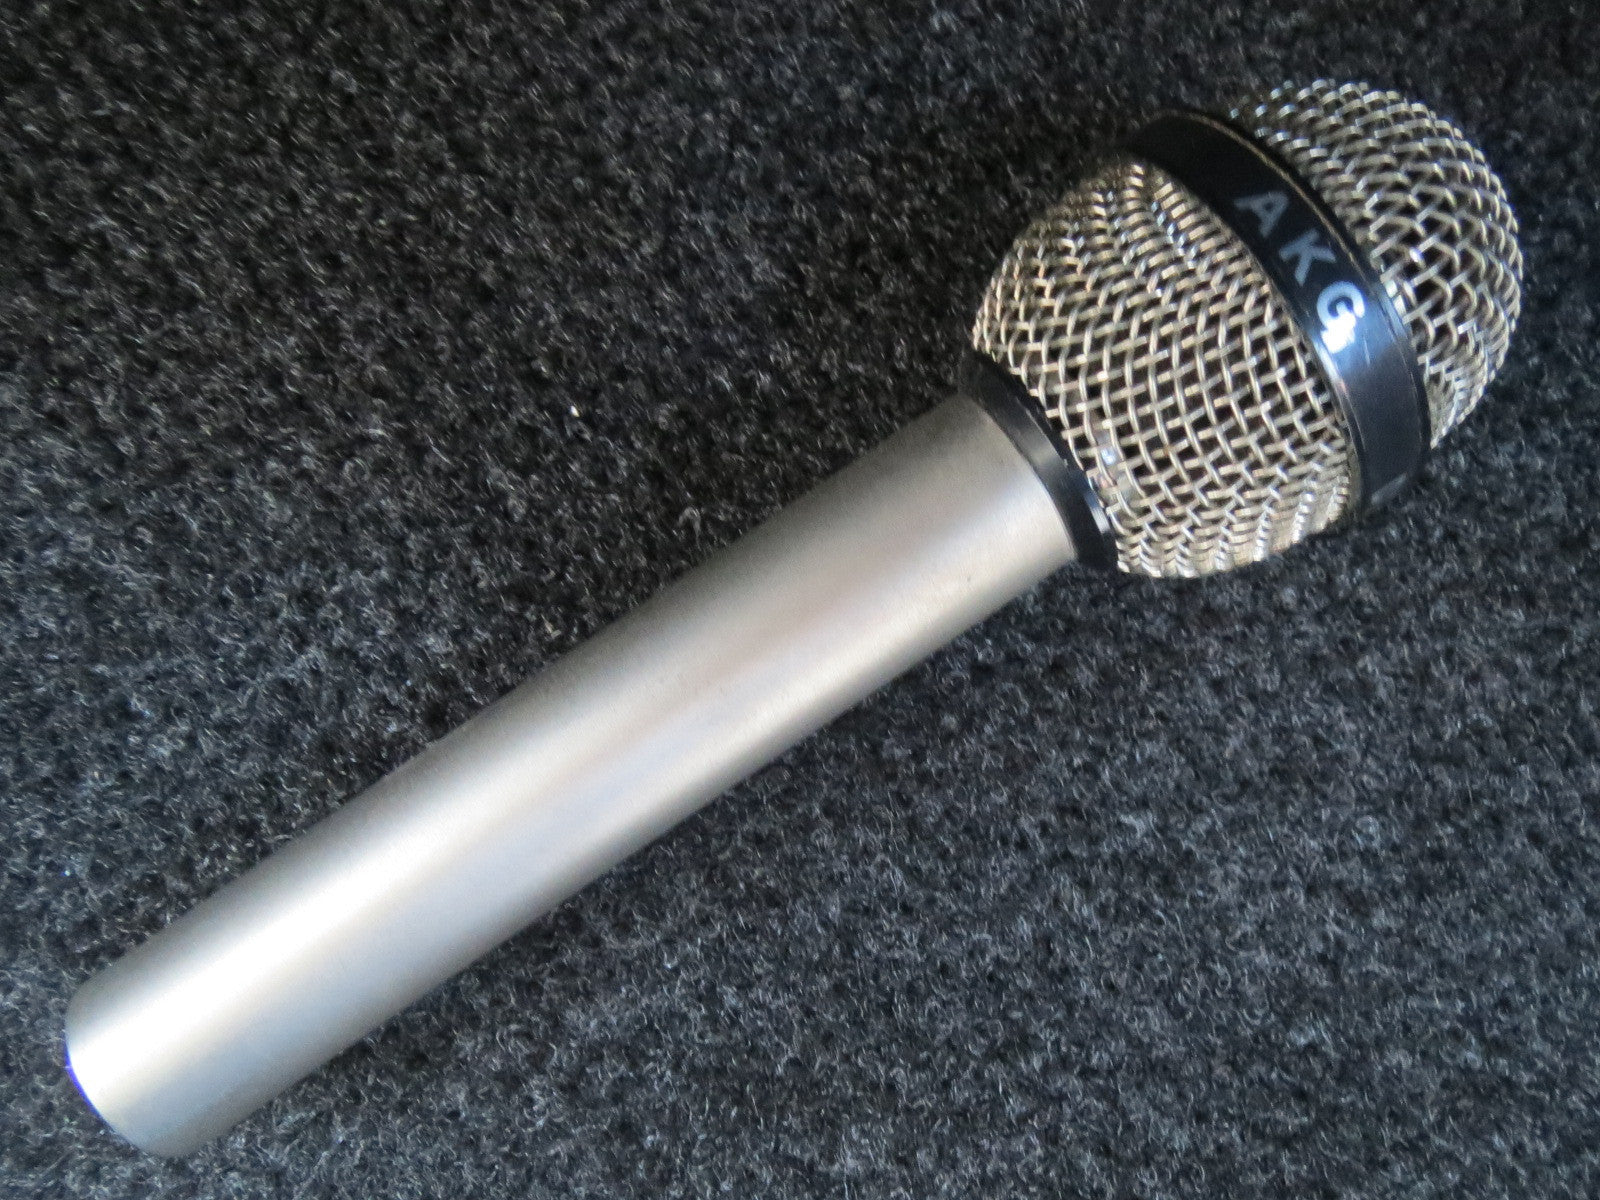 AKG D707 RARE VINTAGE DYNAMIC CARDIOID MICROPHONE WITH XLR CONNECTOR